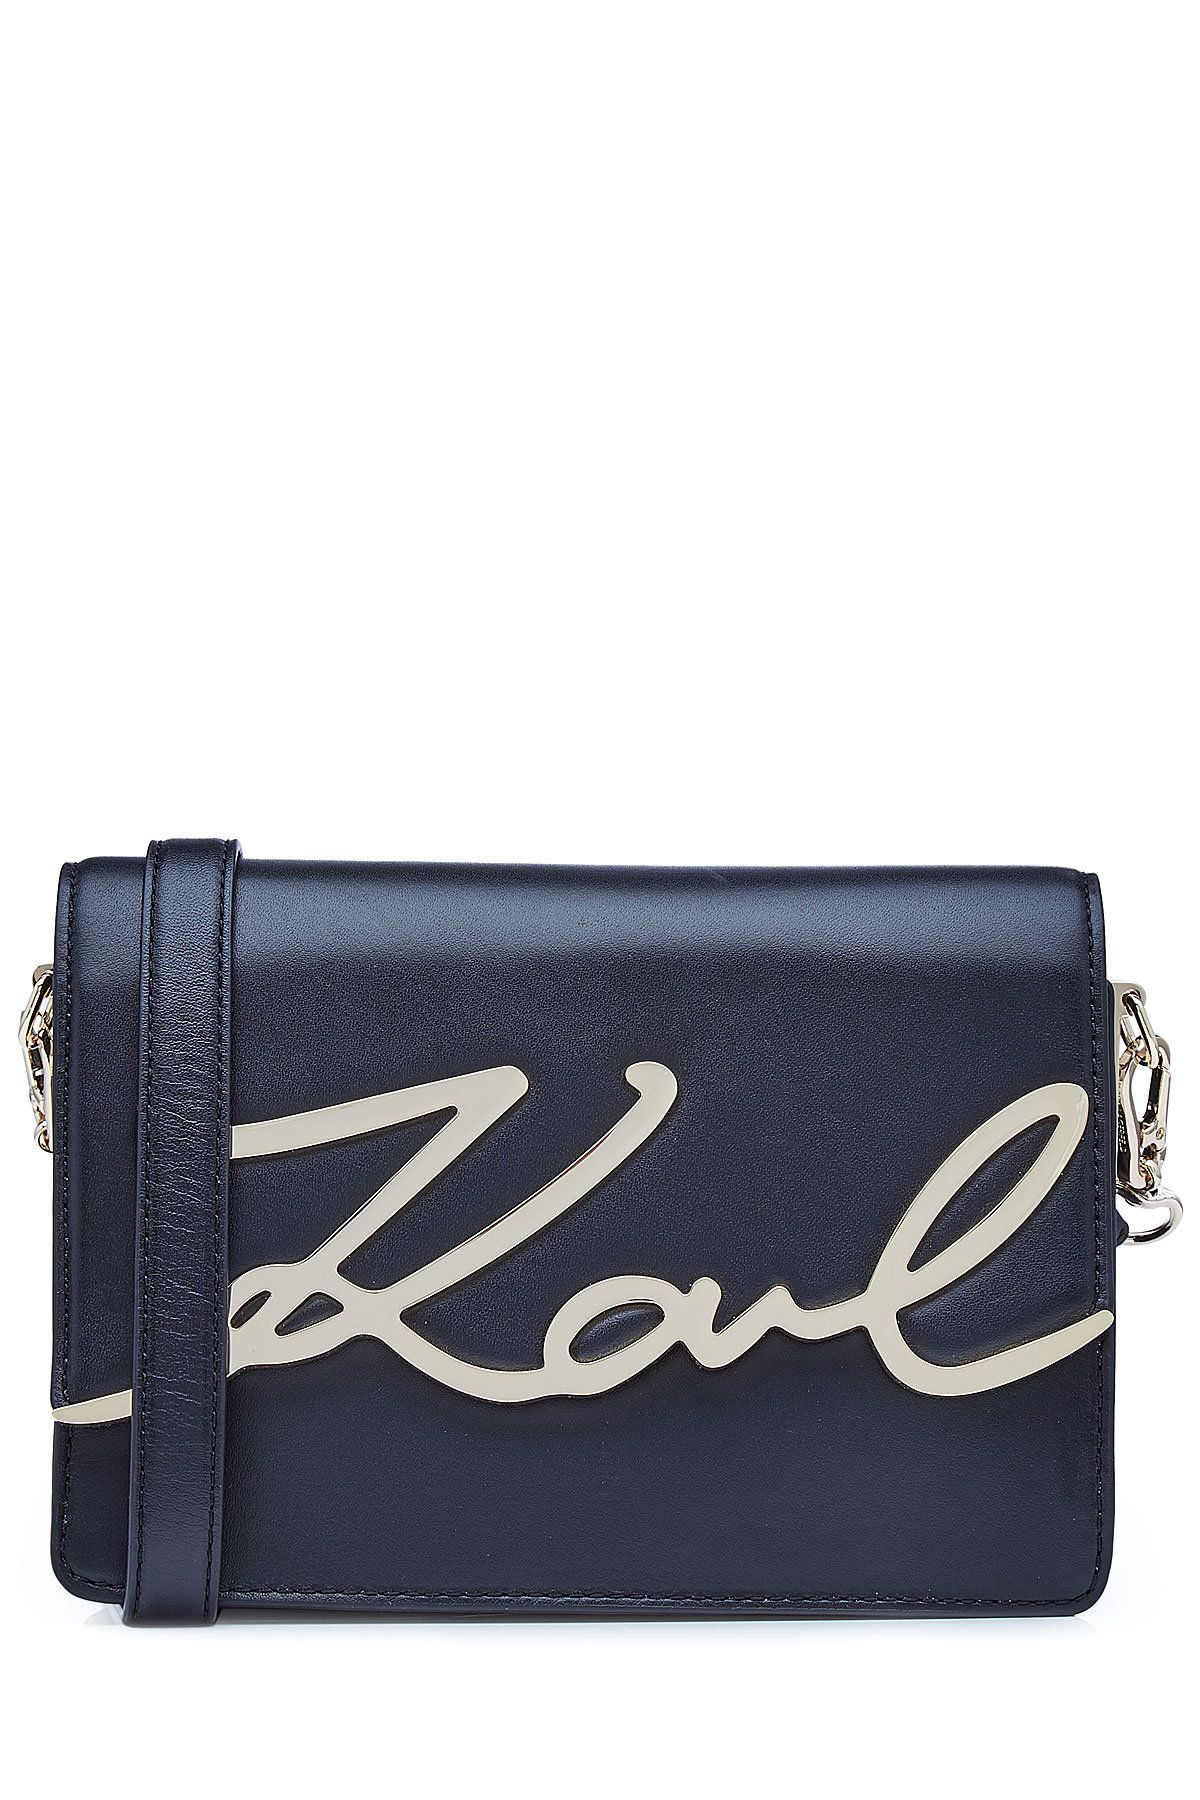 b889354428 KARL LAGERFELD x STYLEBOP.com K Signature Shoulder Bag in Midnight Blue